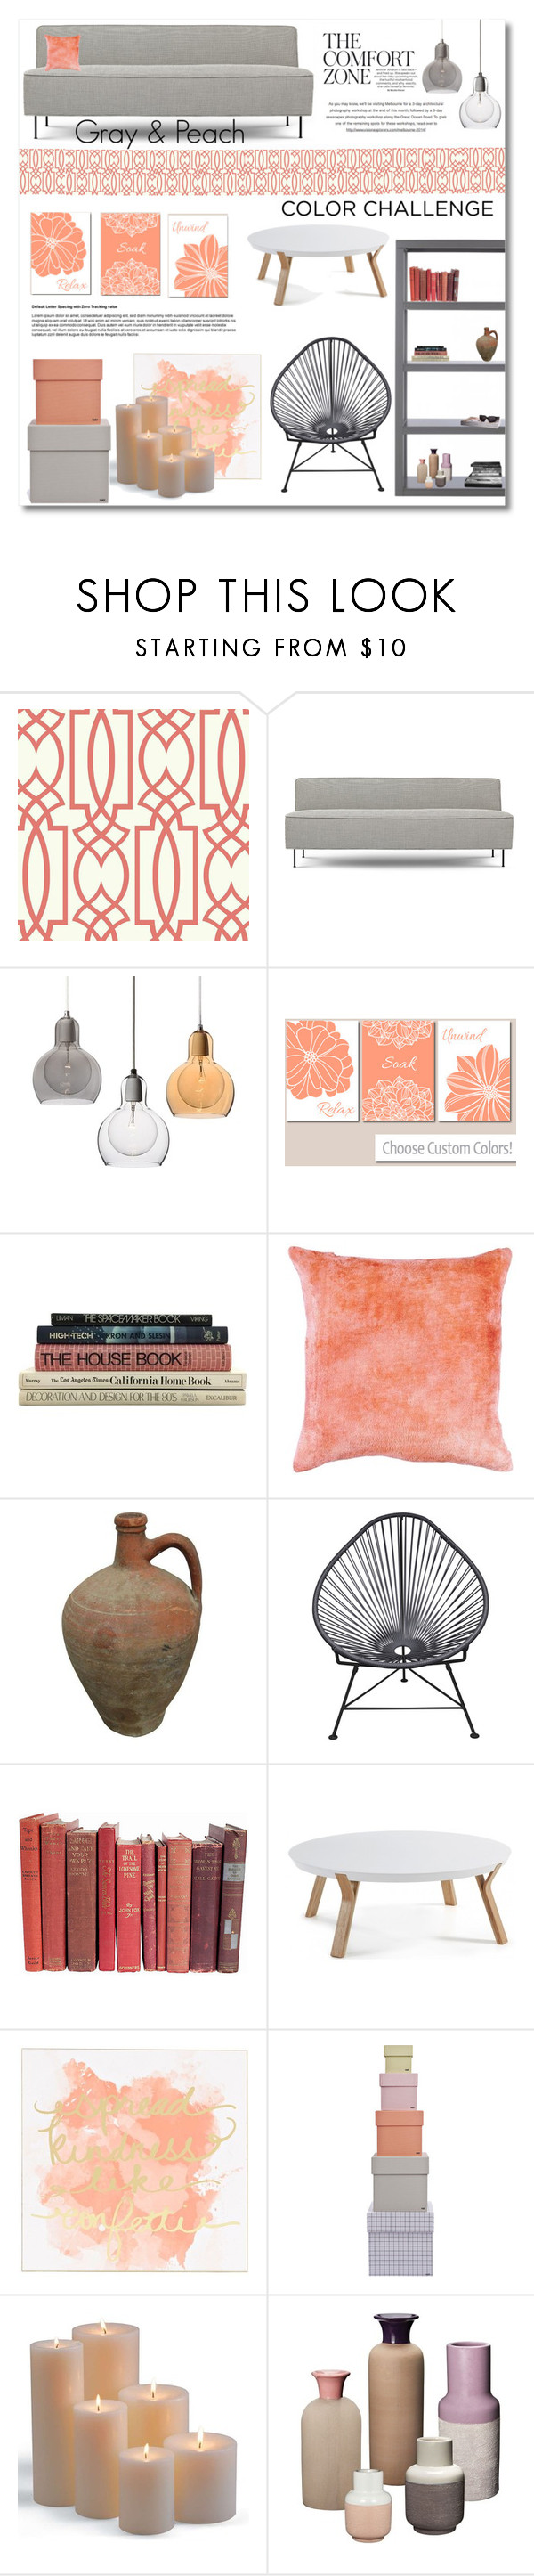 """""""Color Challenge: Gray & Peach"""" by anitadz ❤ liked on Polyvore featuring interior, interiors, interior design, home, home decor, interior decorating, Gubi, Innit, HAY and Frontgate"""